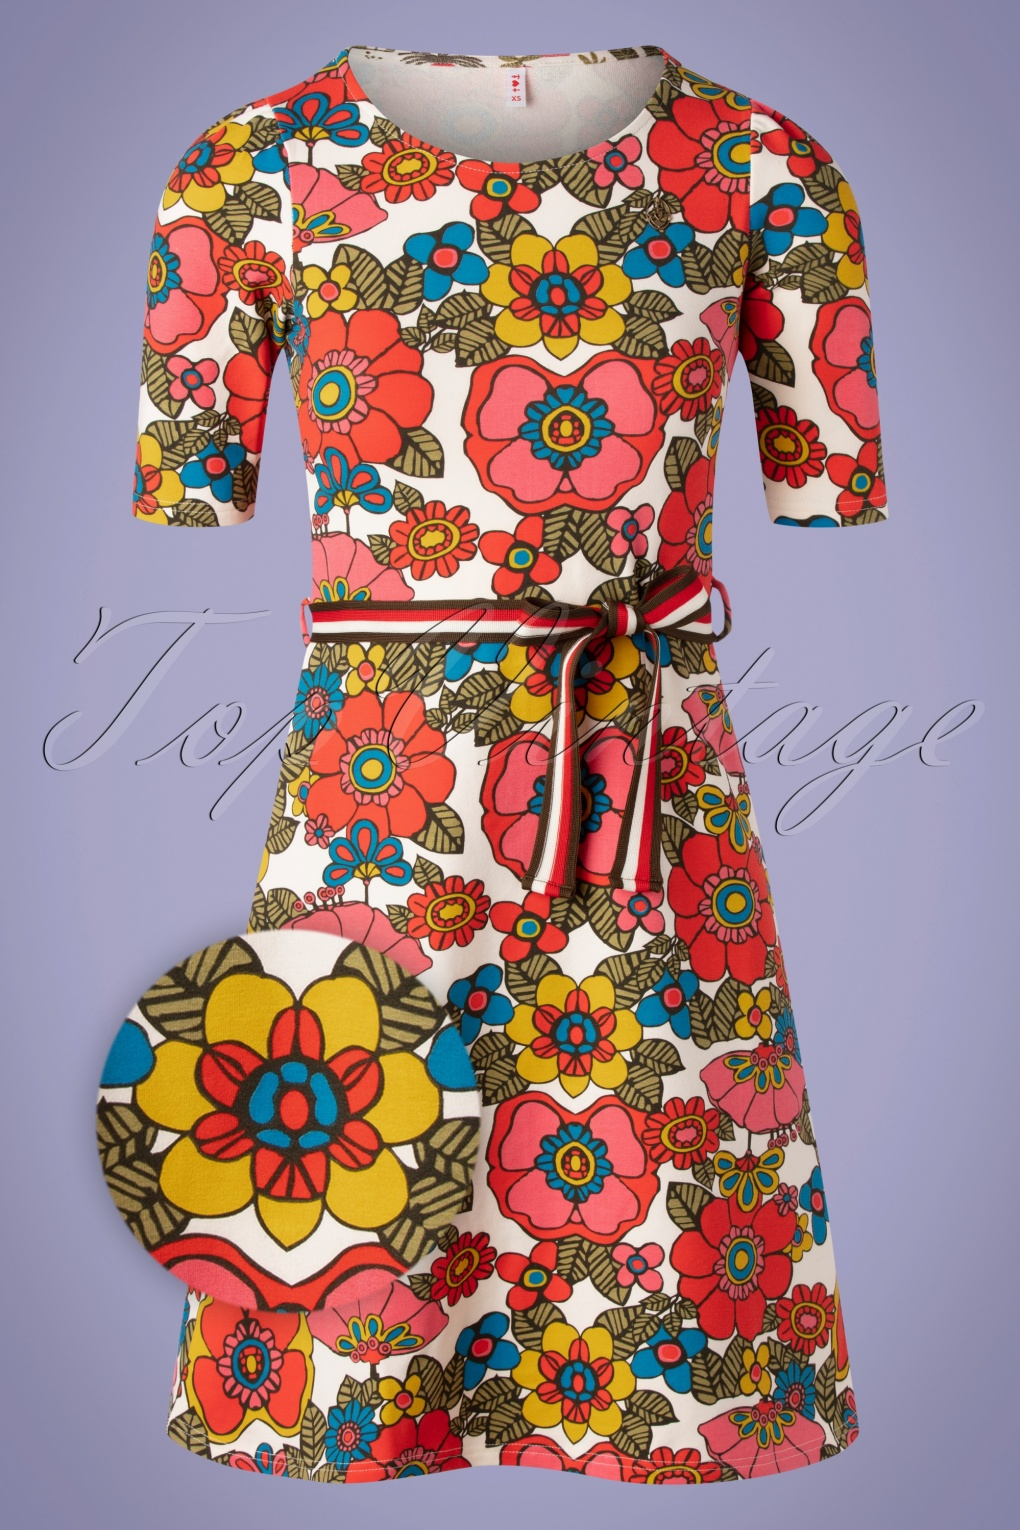 500 Vintage Style Dresses for Sale | Vintage Inspired Dresses 60s Caravan Of Love Dress in Shower Flower Multi £78.92 AT vintagedancer.com